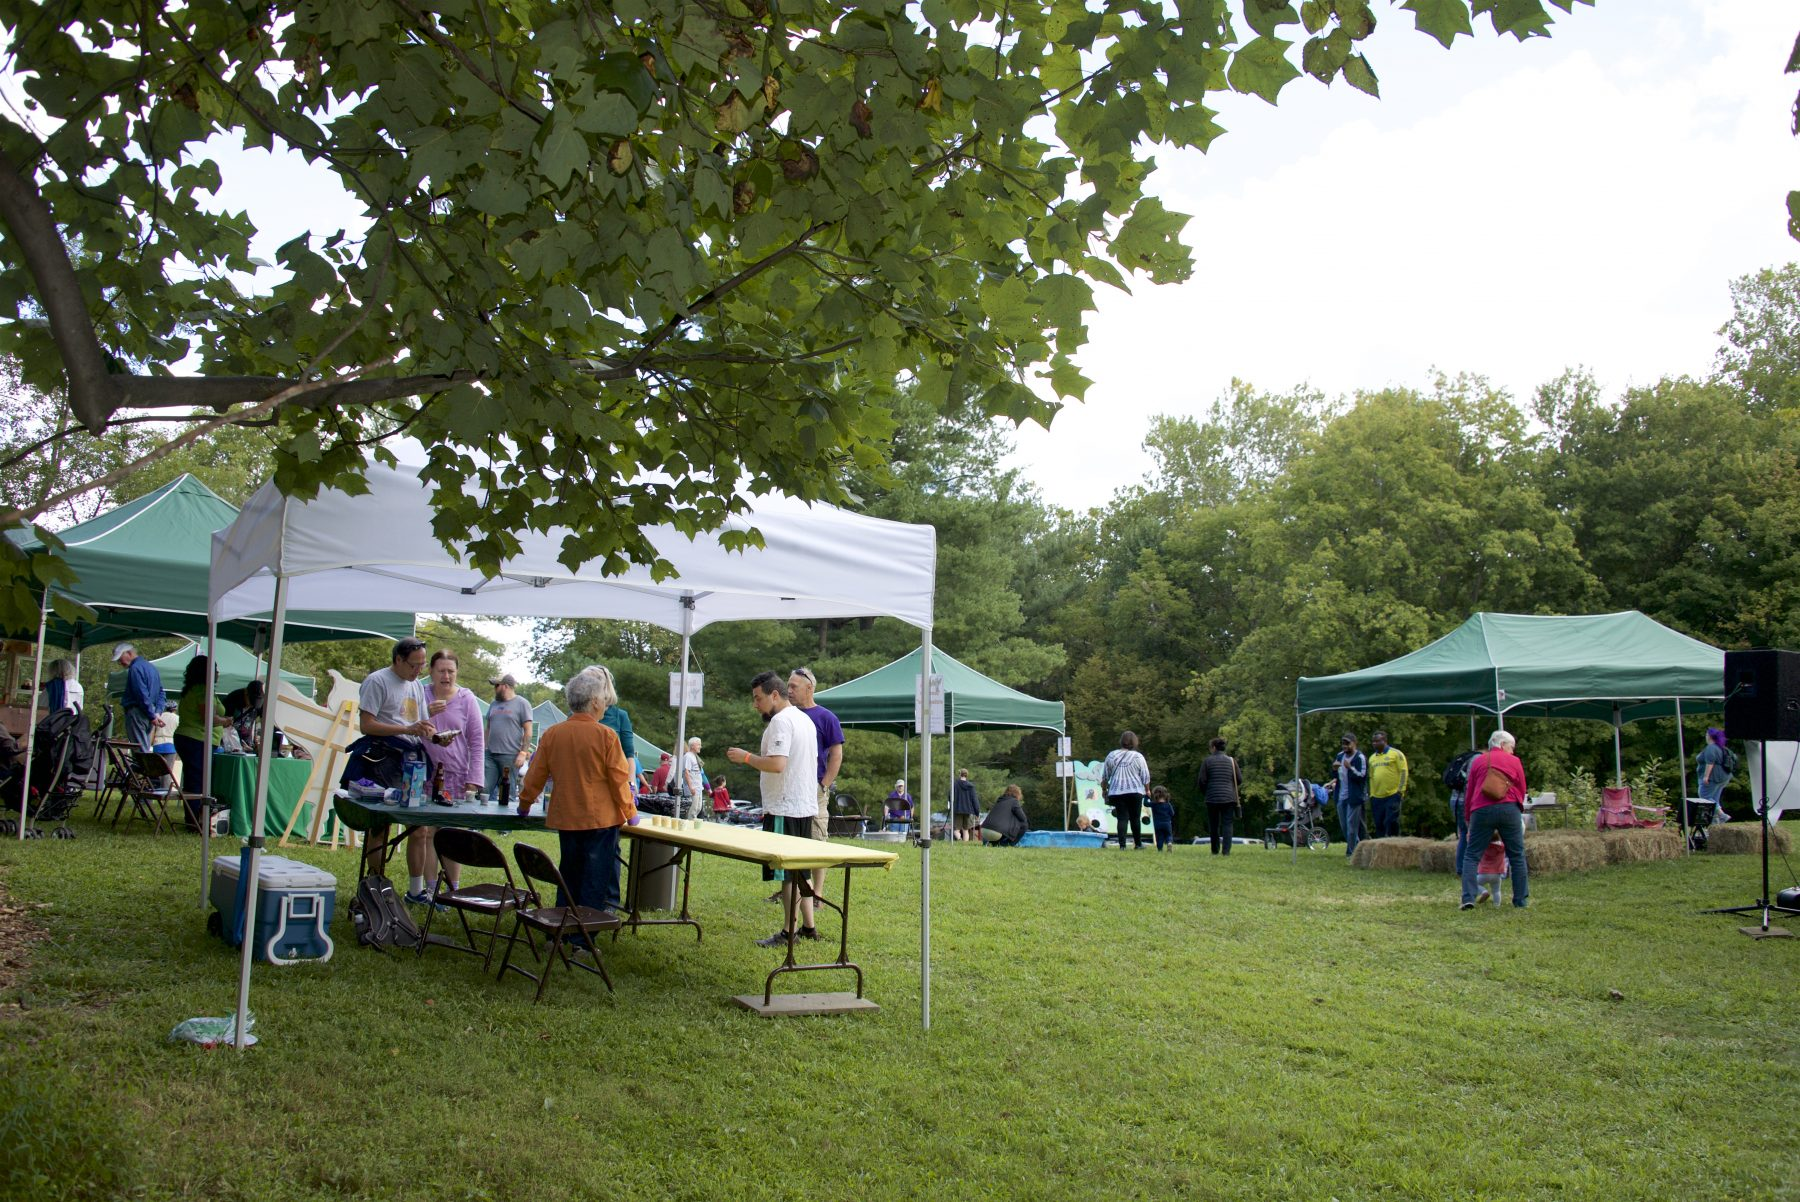 Tents and people attending Pawpapw festival at Meadowside Nature Center